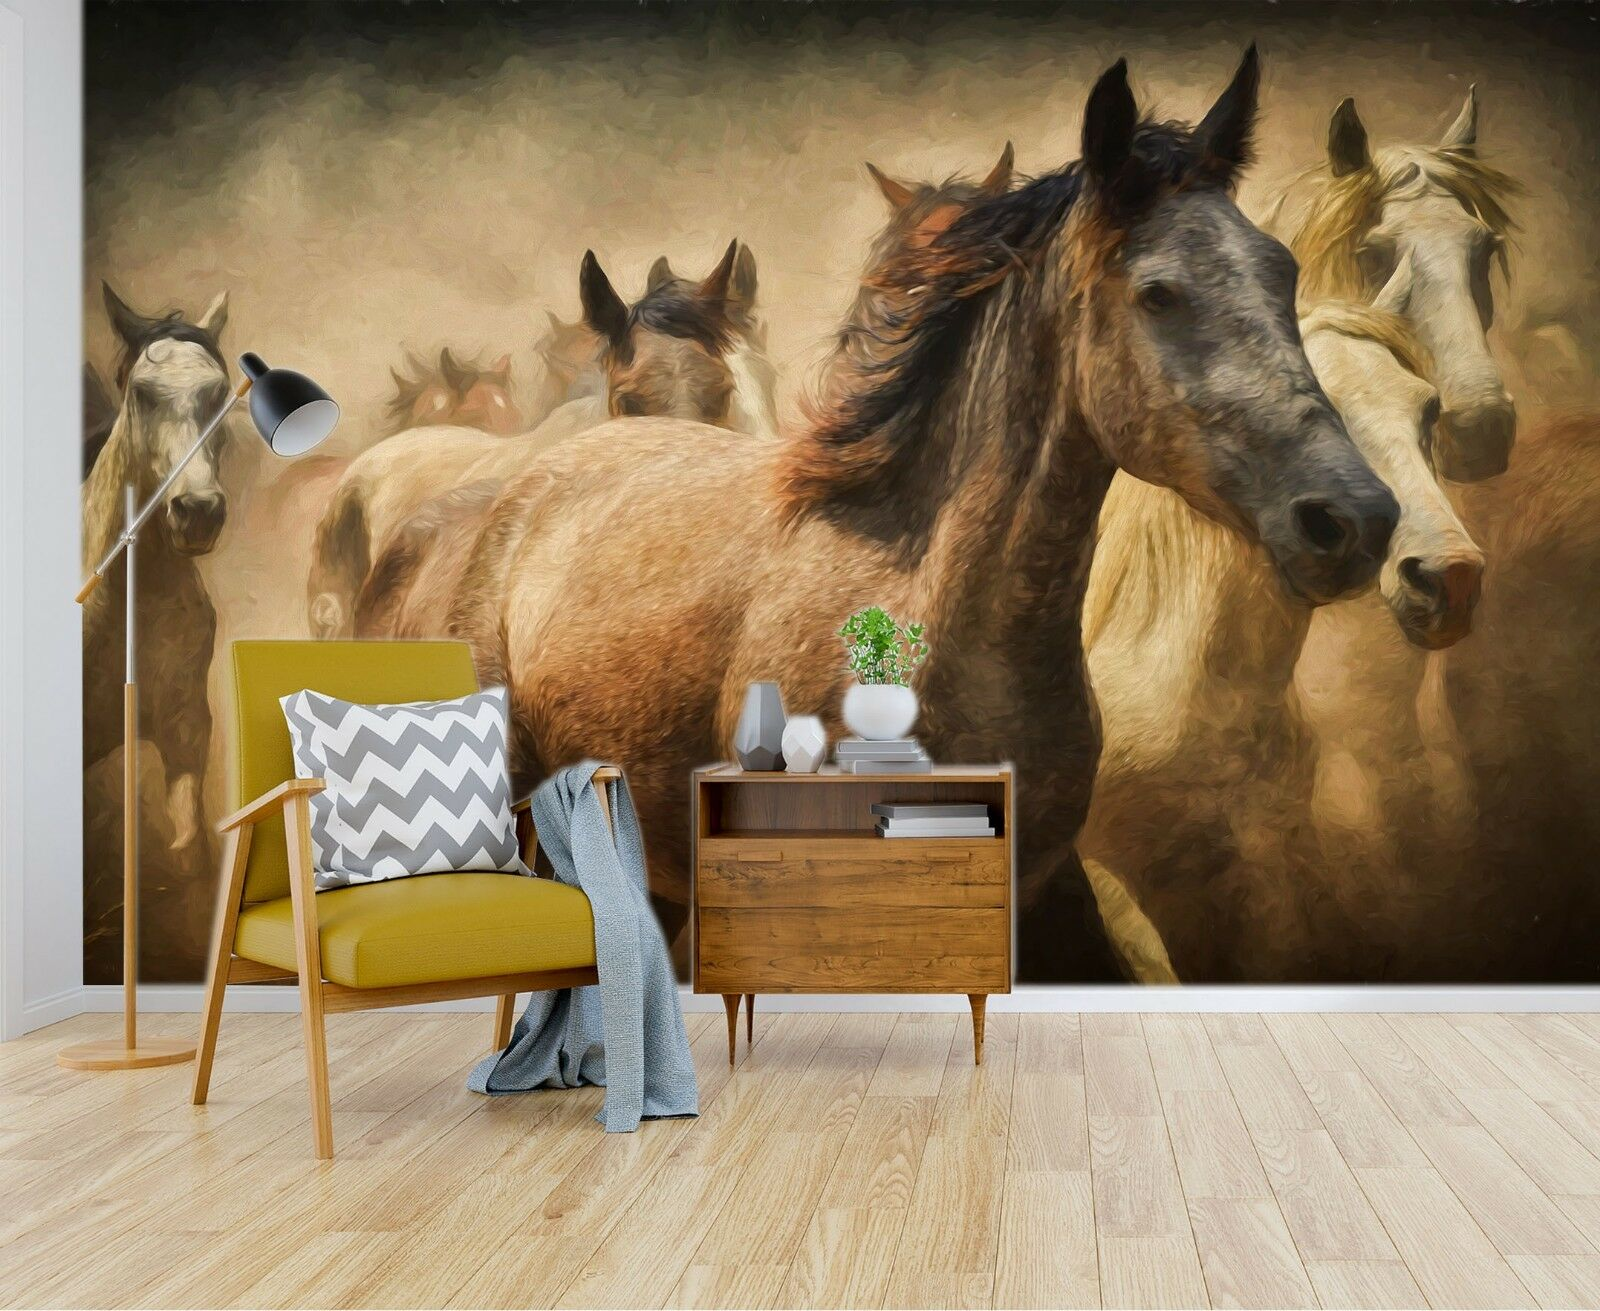 3D Horse Group Oil Painting 4 Wallpaper Mural Wall Print Wallpaper Mural AJ WALL